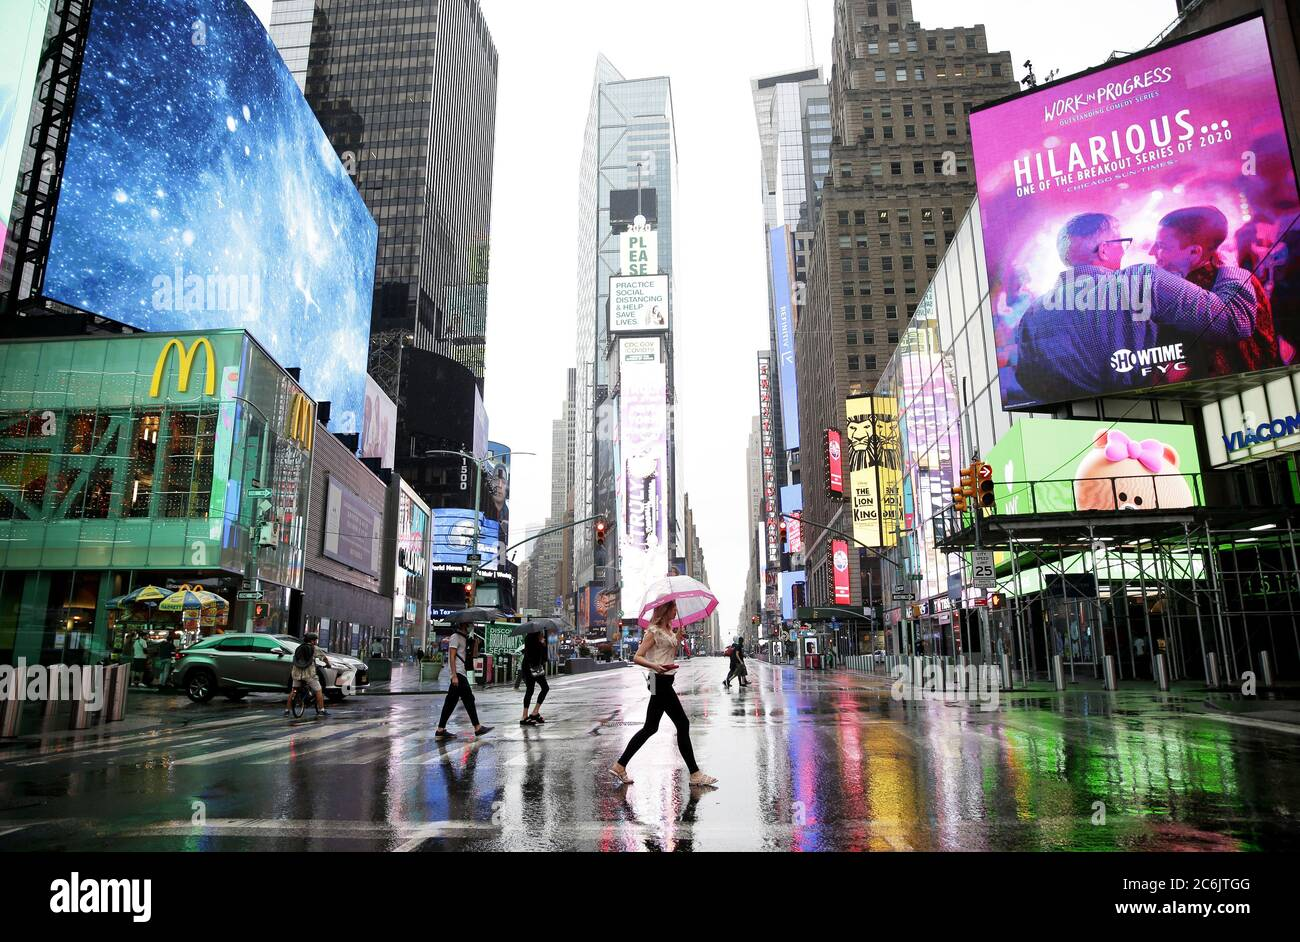 New York, United States. 10th July, 2020. Pedestrians carry umbrellas while walking in Times Square as tropical storm Fay approaches New York City on Friday, July 10, 2020. A tropical storm warning was up for some of Delaware, New Jersey, New York and Connecticut and is expecting wind gusts approach 50 mph in some locations during the day on Friday. Photo by John Angelillo/UPI Credit: UPI/Alamy Live News Stock Photo